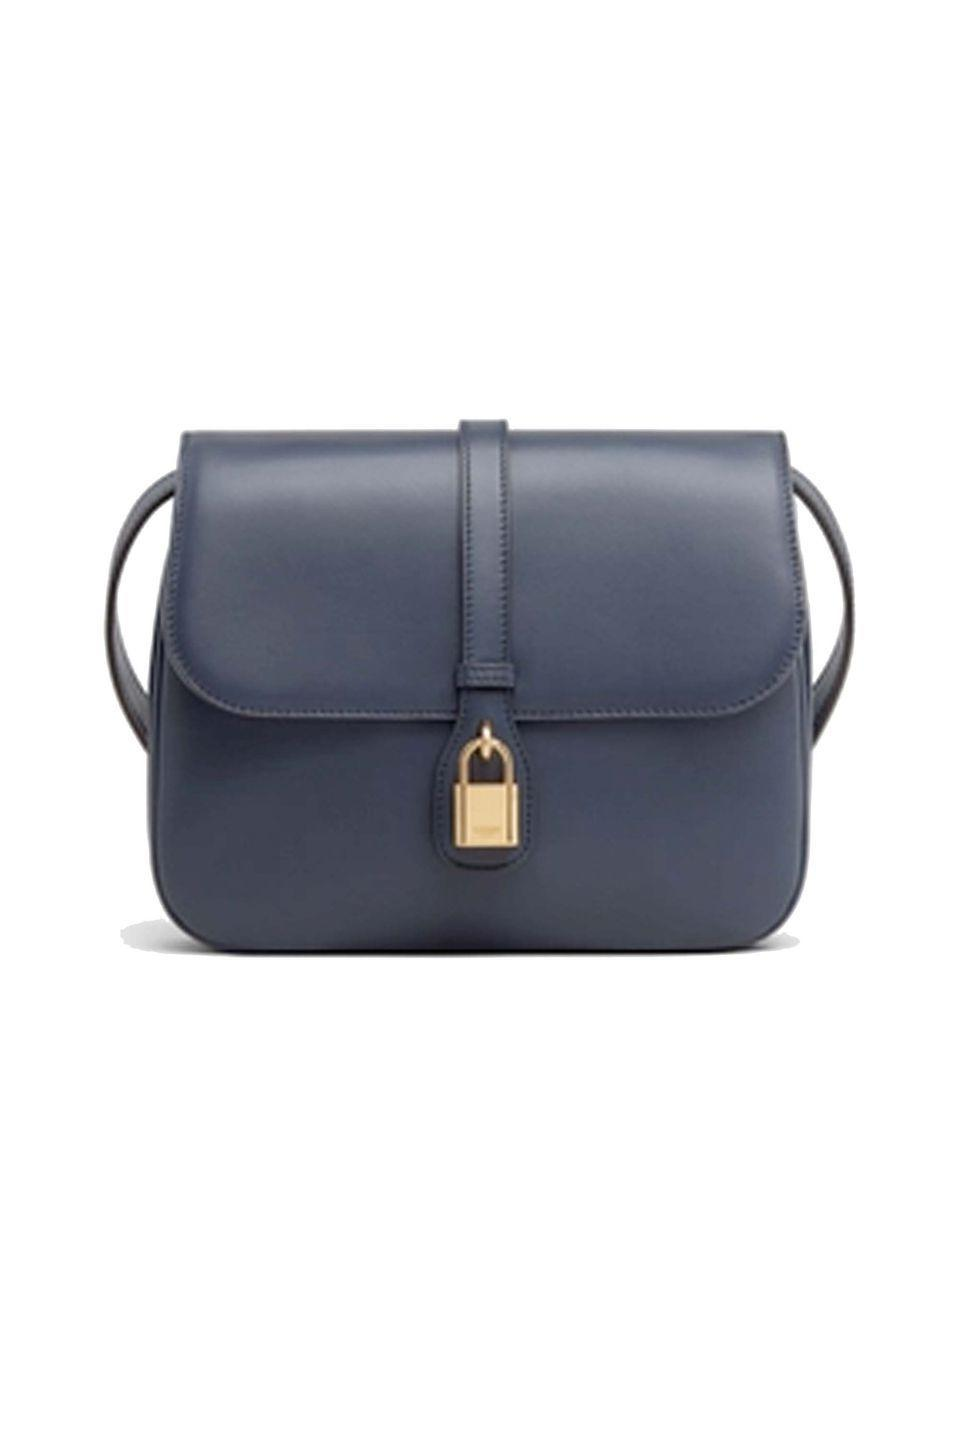 """<p><a class=""""link rapid-noclick-resp"""" href=""""https://www.celine.com/en-gb/celine-shop-women/handbags/more-lines/medium-tabou-in-smooth-calfskin-196583DK1.07OC.html"""" rel=""""nofollow noopener"""" target=""""_blank"""" data-ylk=""""slk:SHOP NOW"""">SHOP NOW</a></p><p>Celine is a firm favourite for chic accessories, crafted from the most luxurious materials. This Tabou saddle bag is particularly special – a signature style directly inspired by the Celine archives, which is available in number of classic colours, including navy and tan. </p><p>Textile and calfskin cross-body bag, £1,750, <a href=""""https://www.celine.com/en-gb/celine-shop-women/handbags/more-lines/medium-tabou-in-smooth-calfskin-196583DK1.07OC.html"""" rel=""""nofollow noopener"""" target=""""_blank"""" data-ylk=""""slk:Celine by Hedi Slimane"""" class=""""link rapid-noclick-resp"""">Celine by Hedi Slimane</a></p>"""